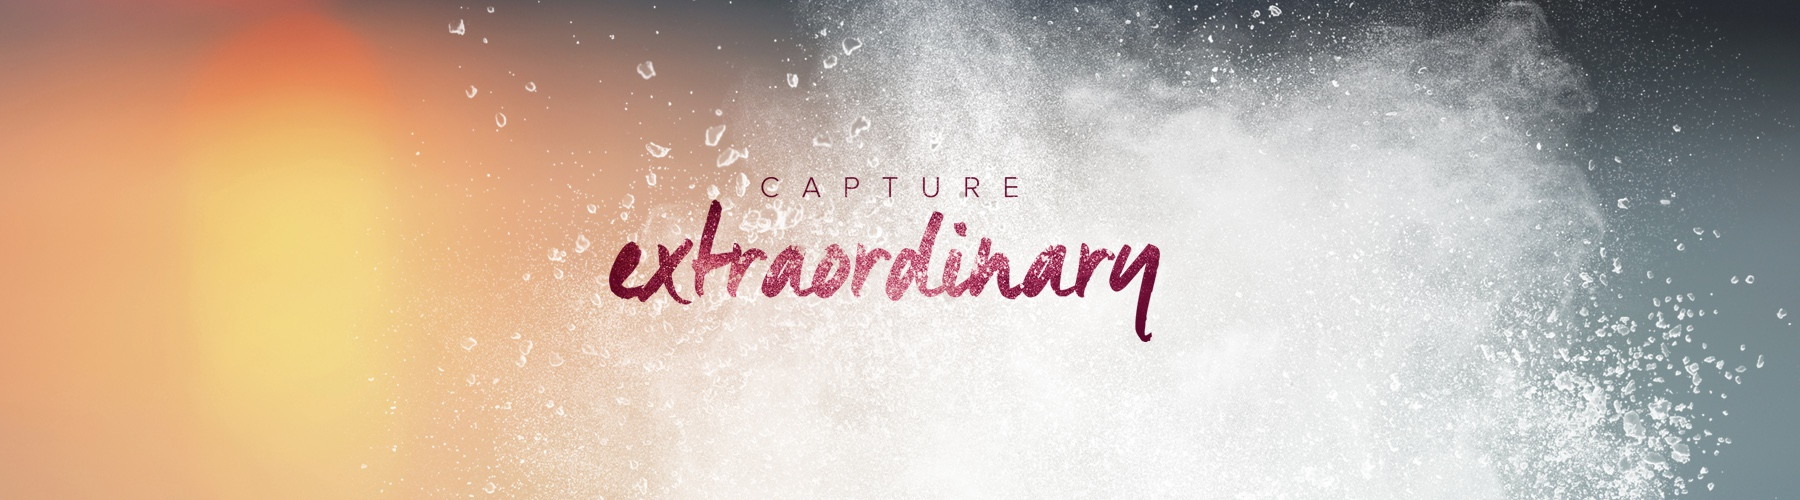 Capture Extraordinary